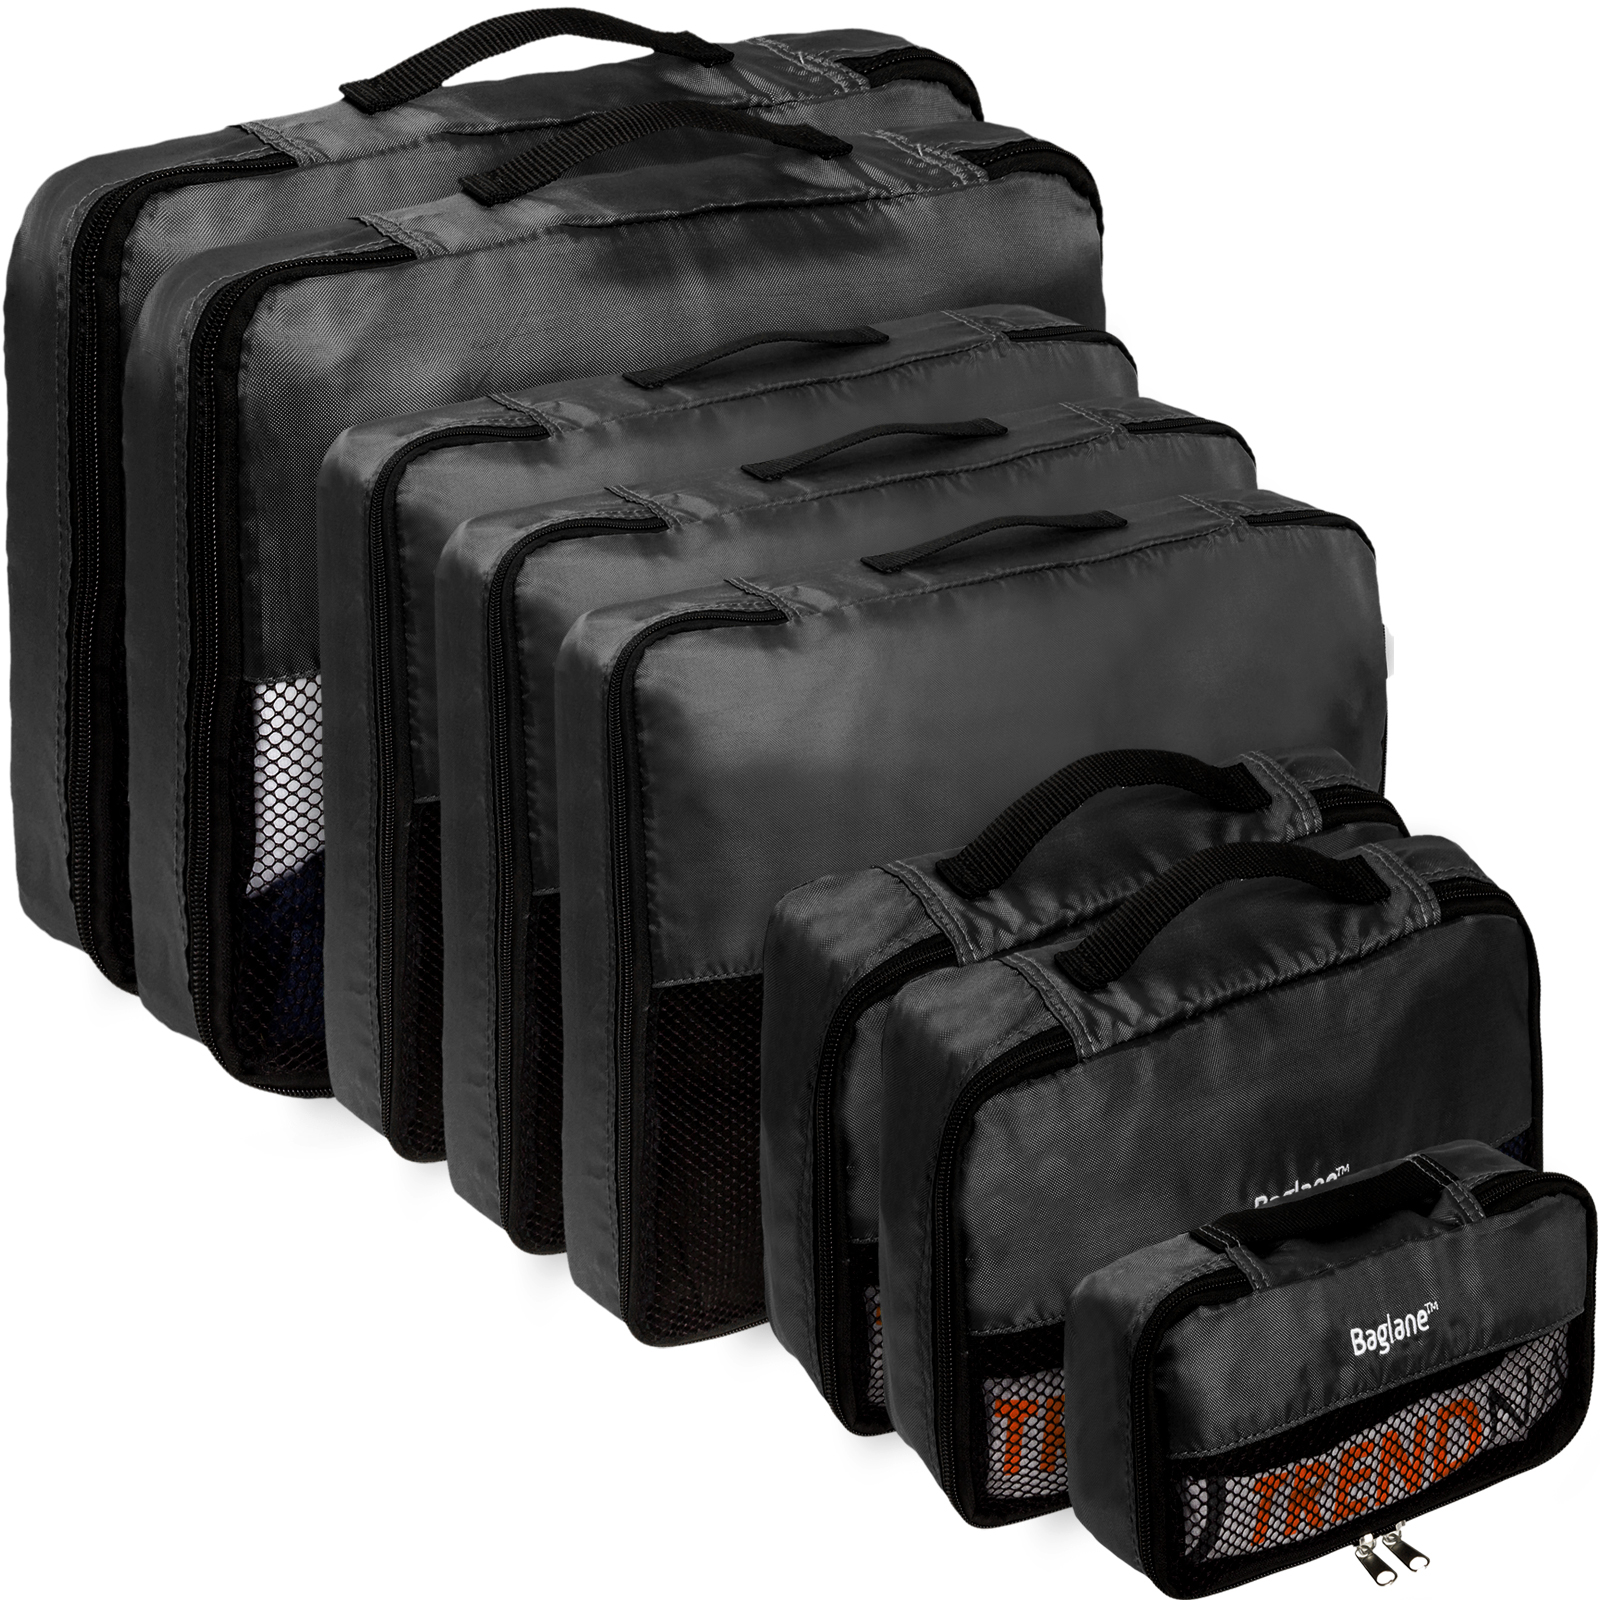 Baglane Black TechLife Nylon Luggage Travel Suitcase Packing Cube Bags - 8pc Set